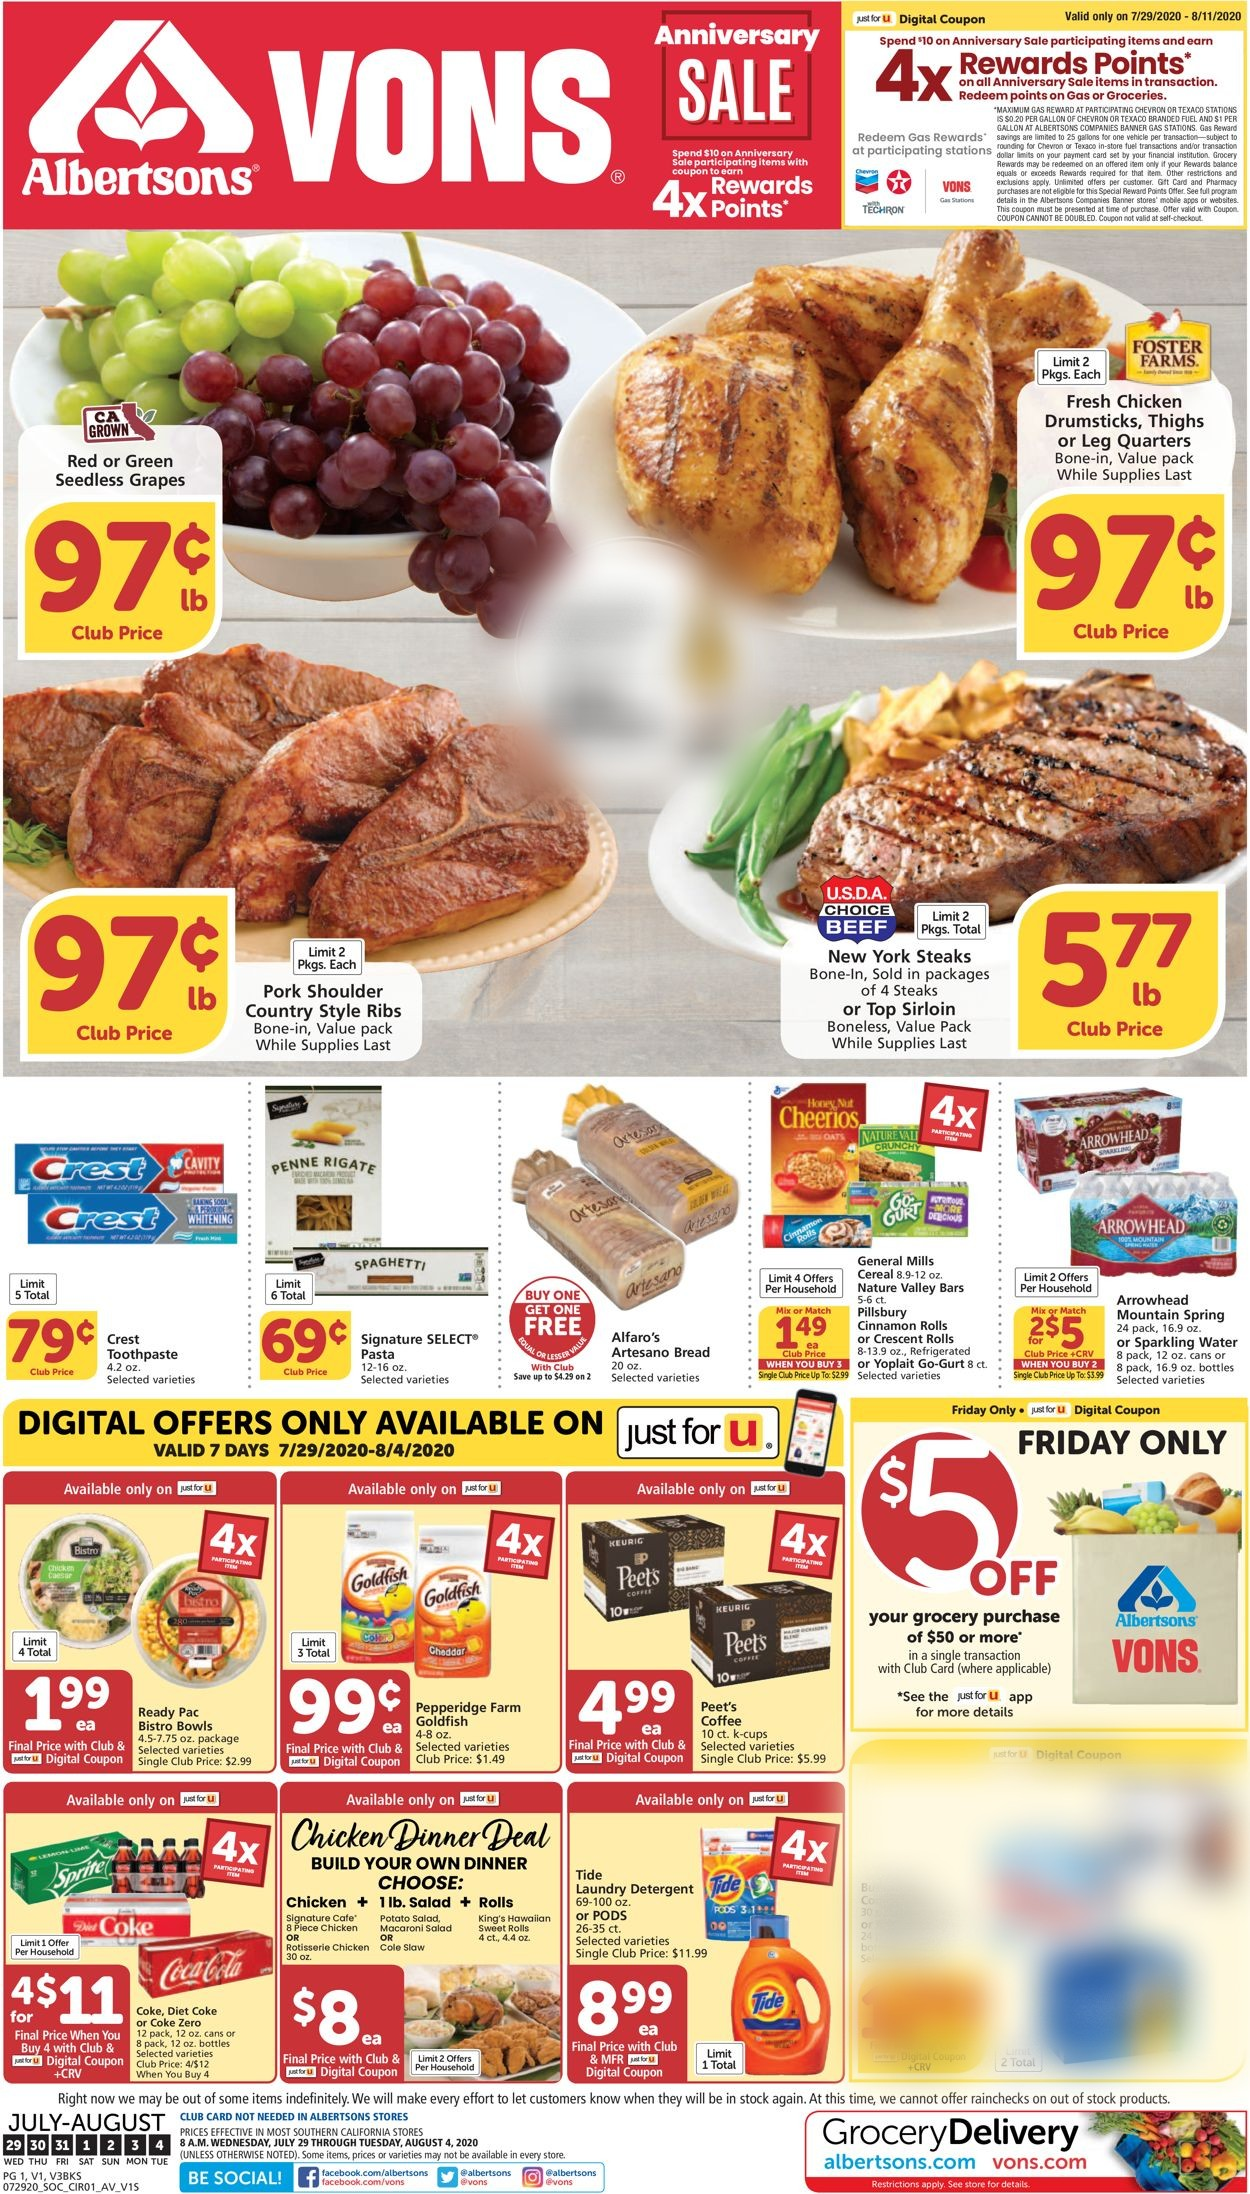 Vons Christmas Dinner 2020 Vons Current weekly ad 07/29   08/04/2020   frequent ads.com